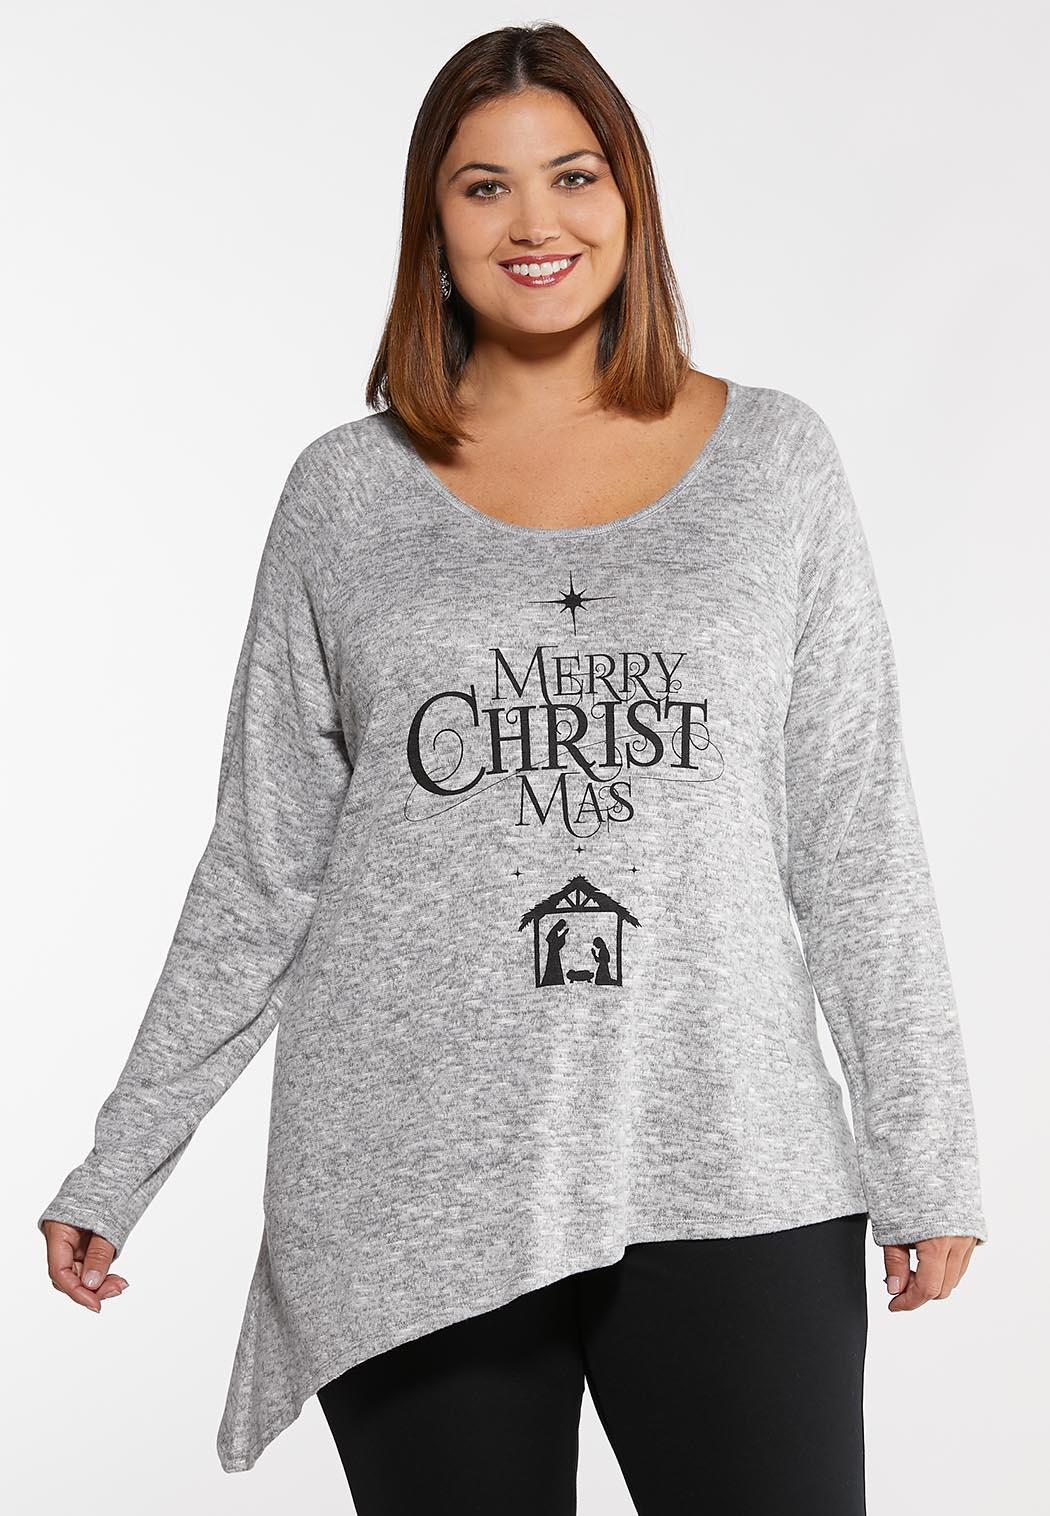 Christmas Top.Plus Size Merry Christmas Graphic Top Graphic Tees Cato Fashions